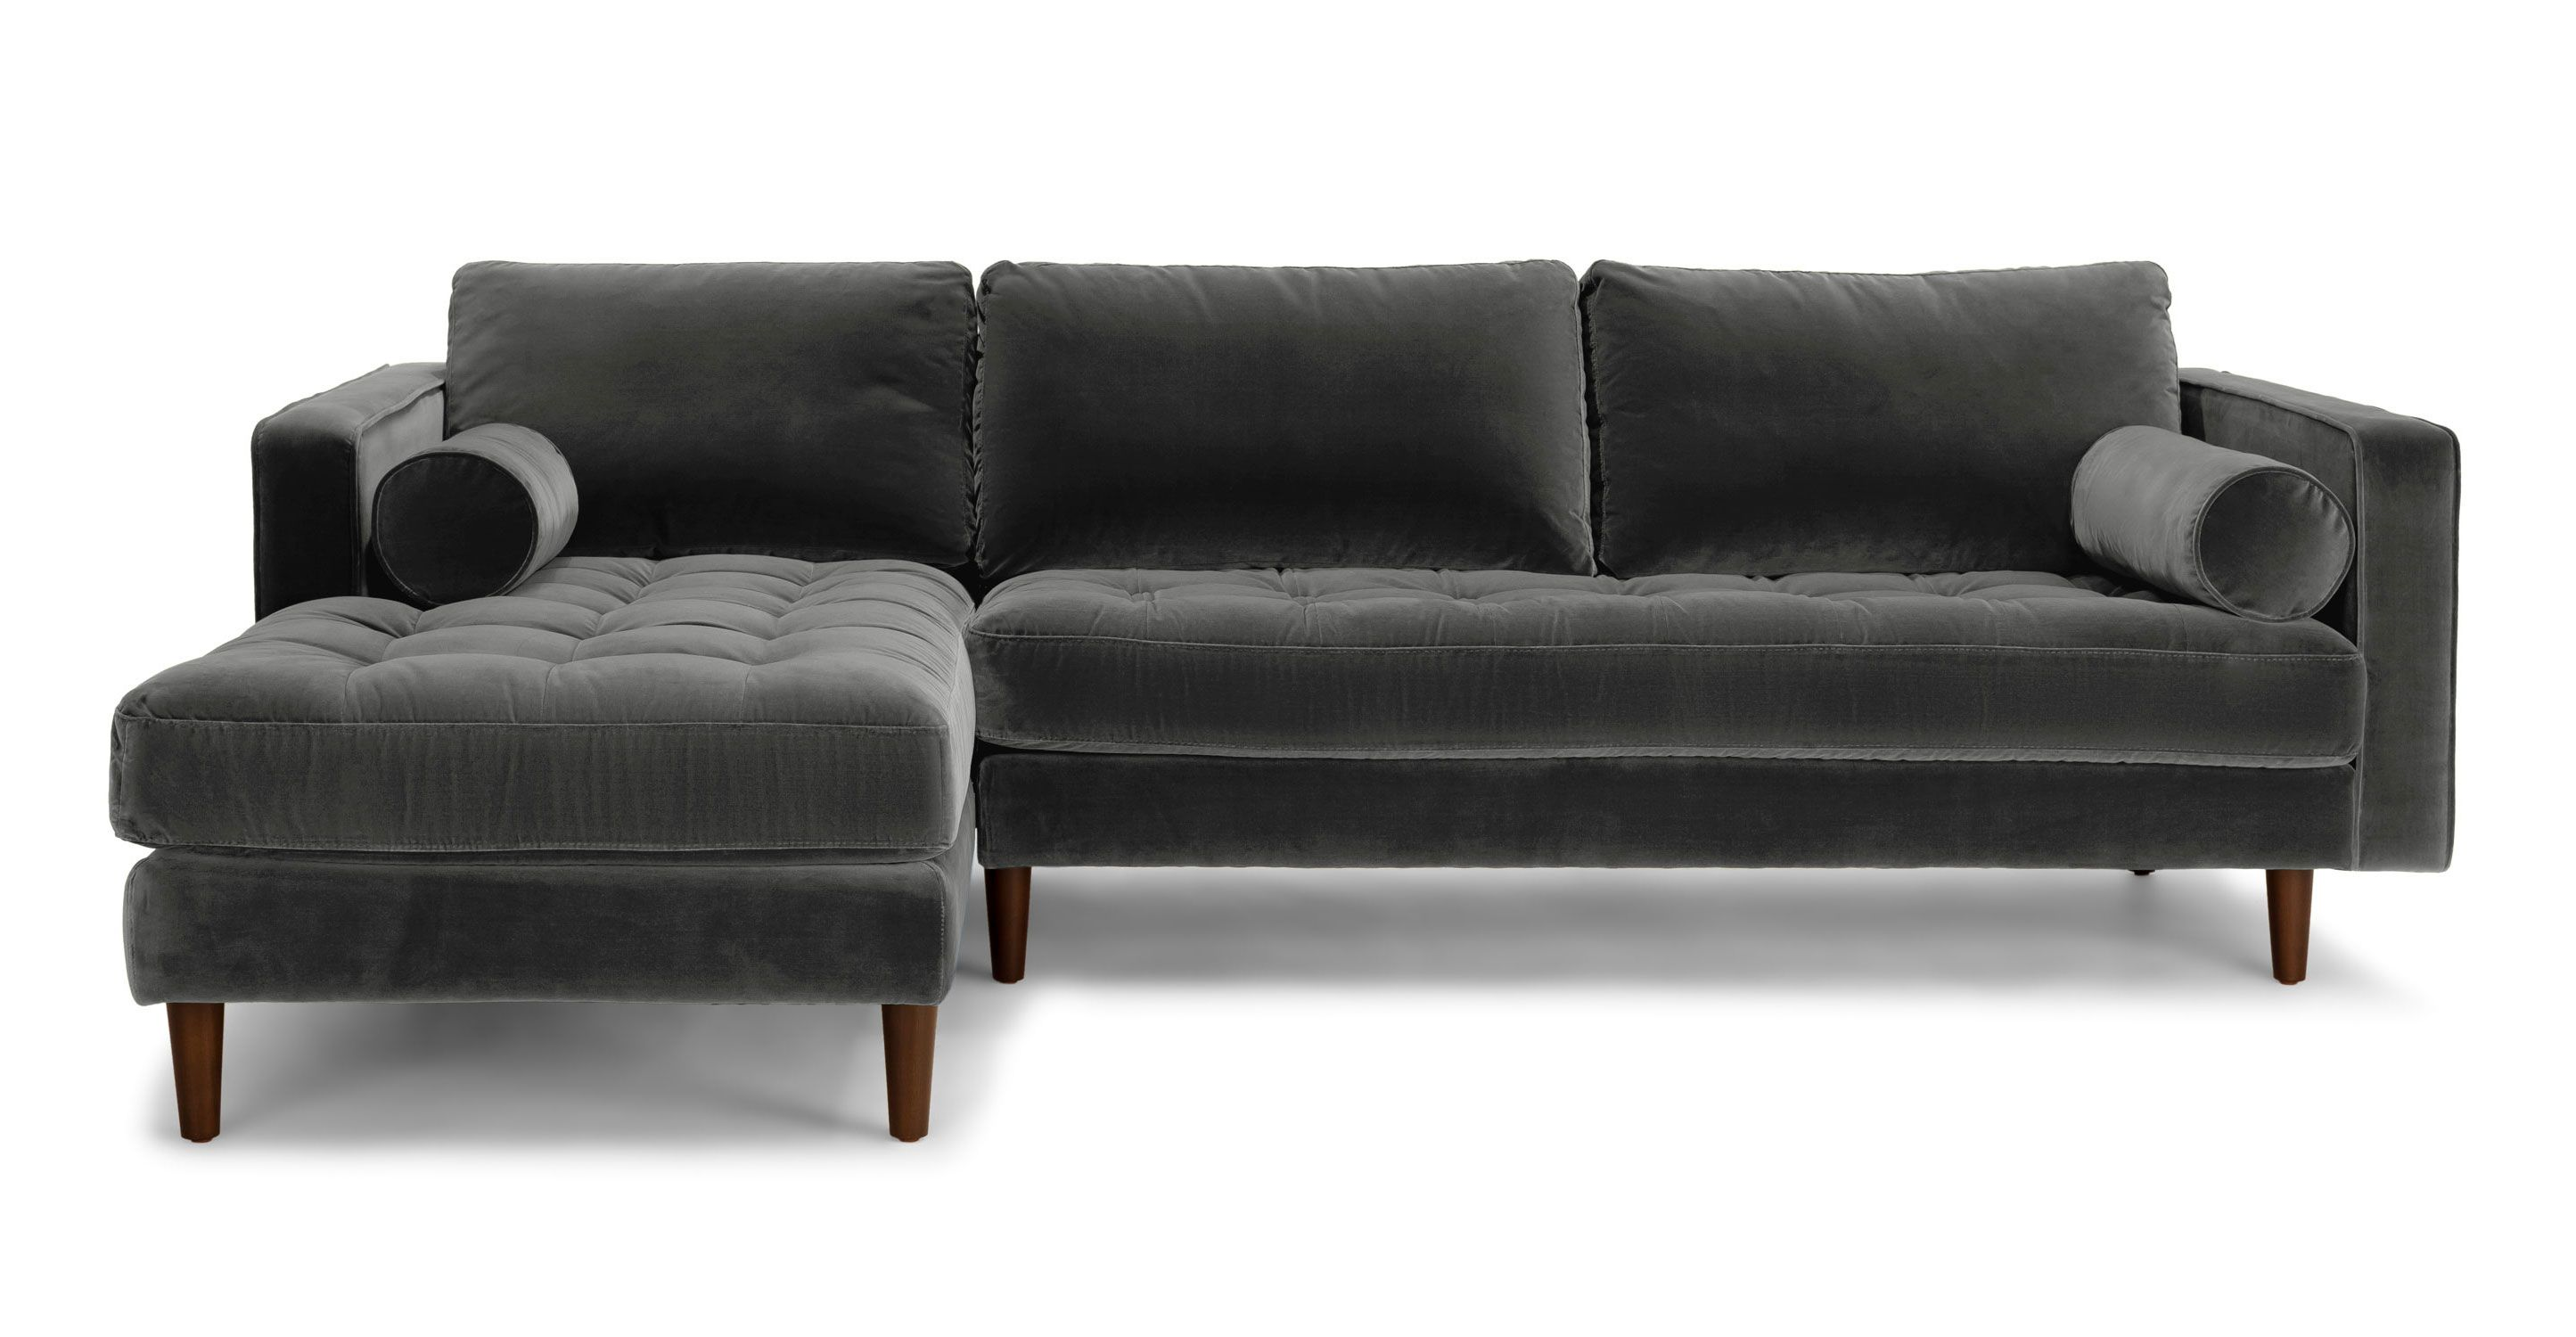 Sven shadow gray left sectional sofa sectionals article modern mid century and scandinavian furniture